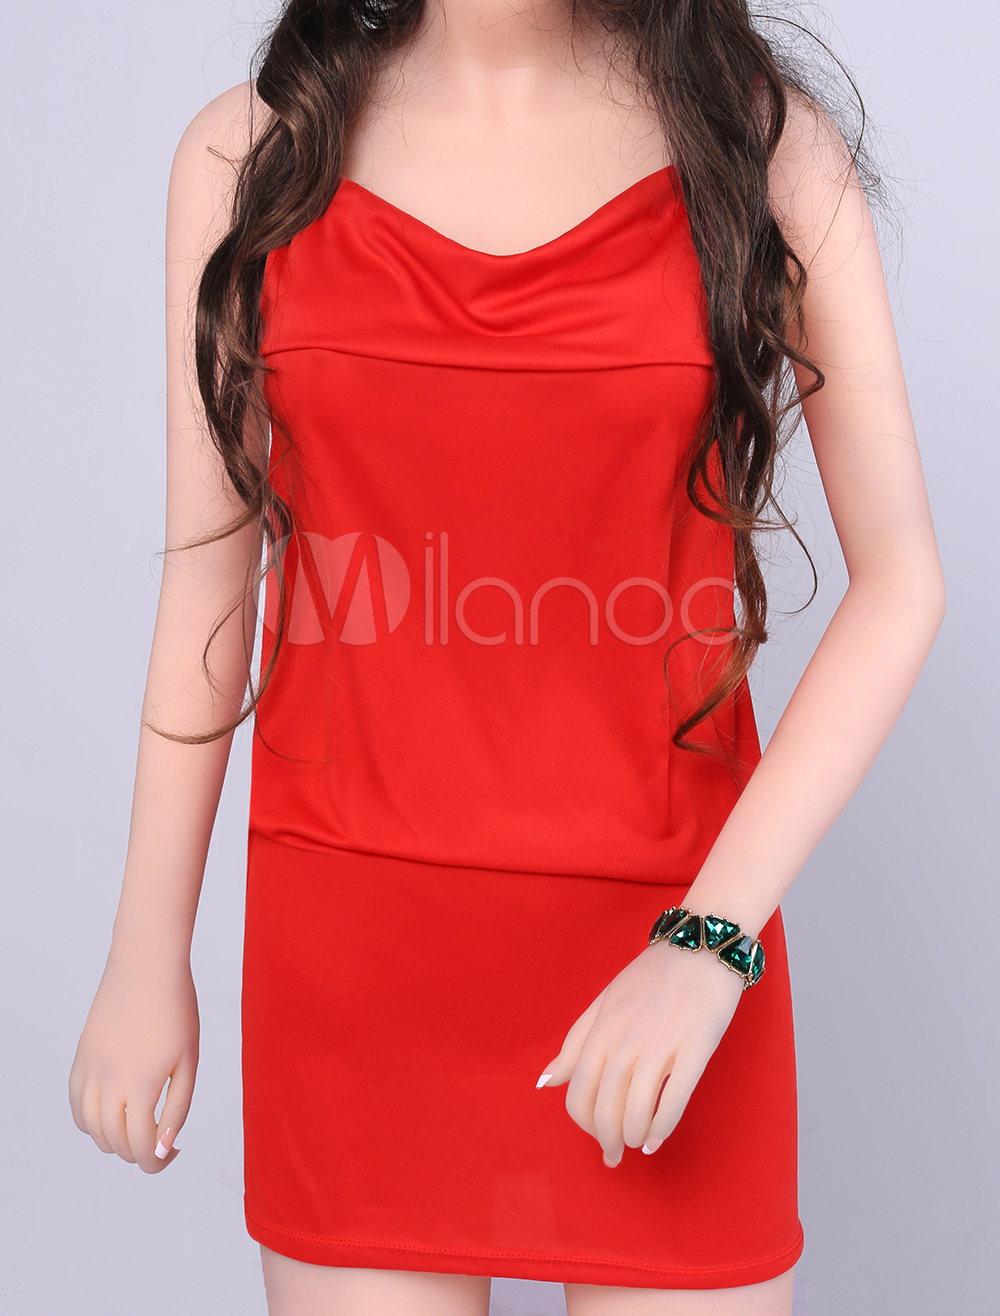 1382390666 Sexy Square Neck Low Cut Backless Polyester Club Dress - Milanoo.com